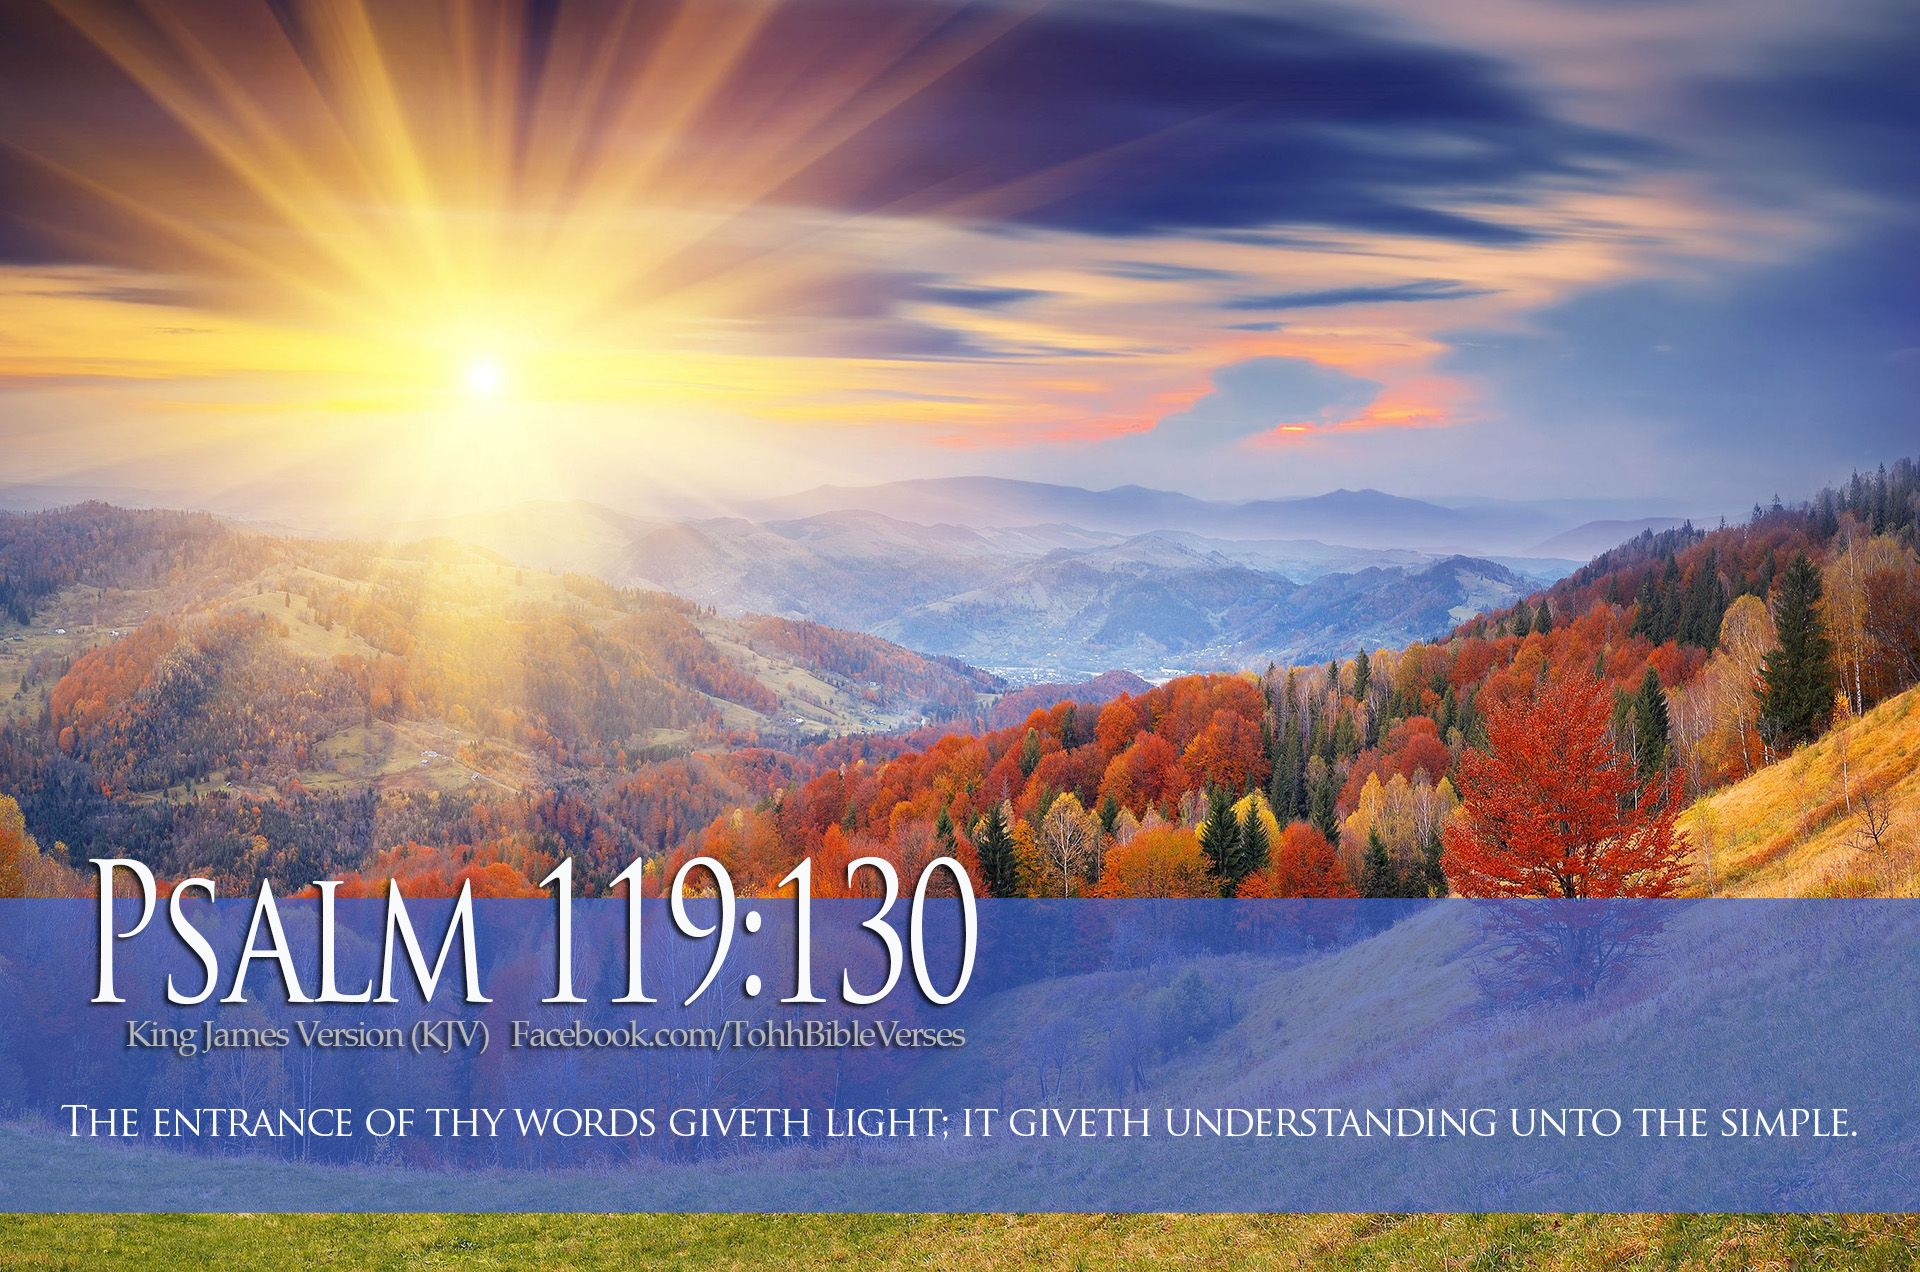 god is love bible verse bible verses psalm 119130 sun rays mountains hd